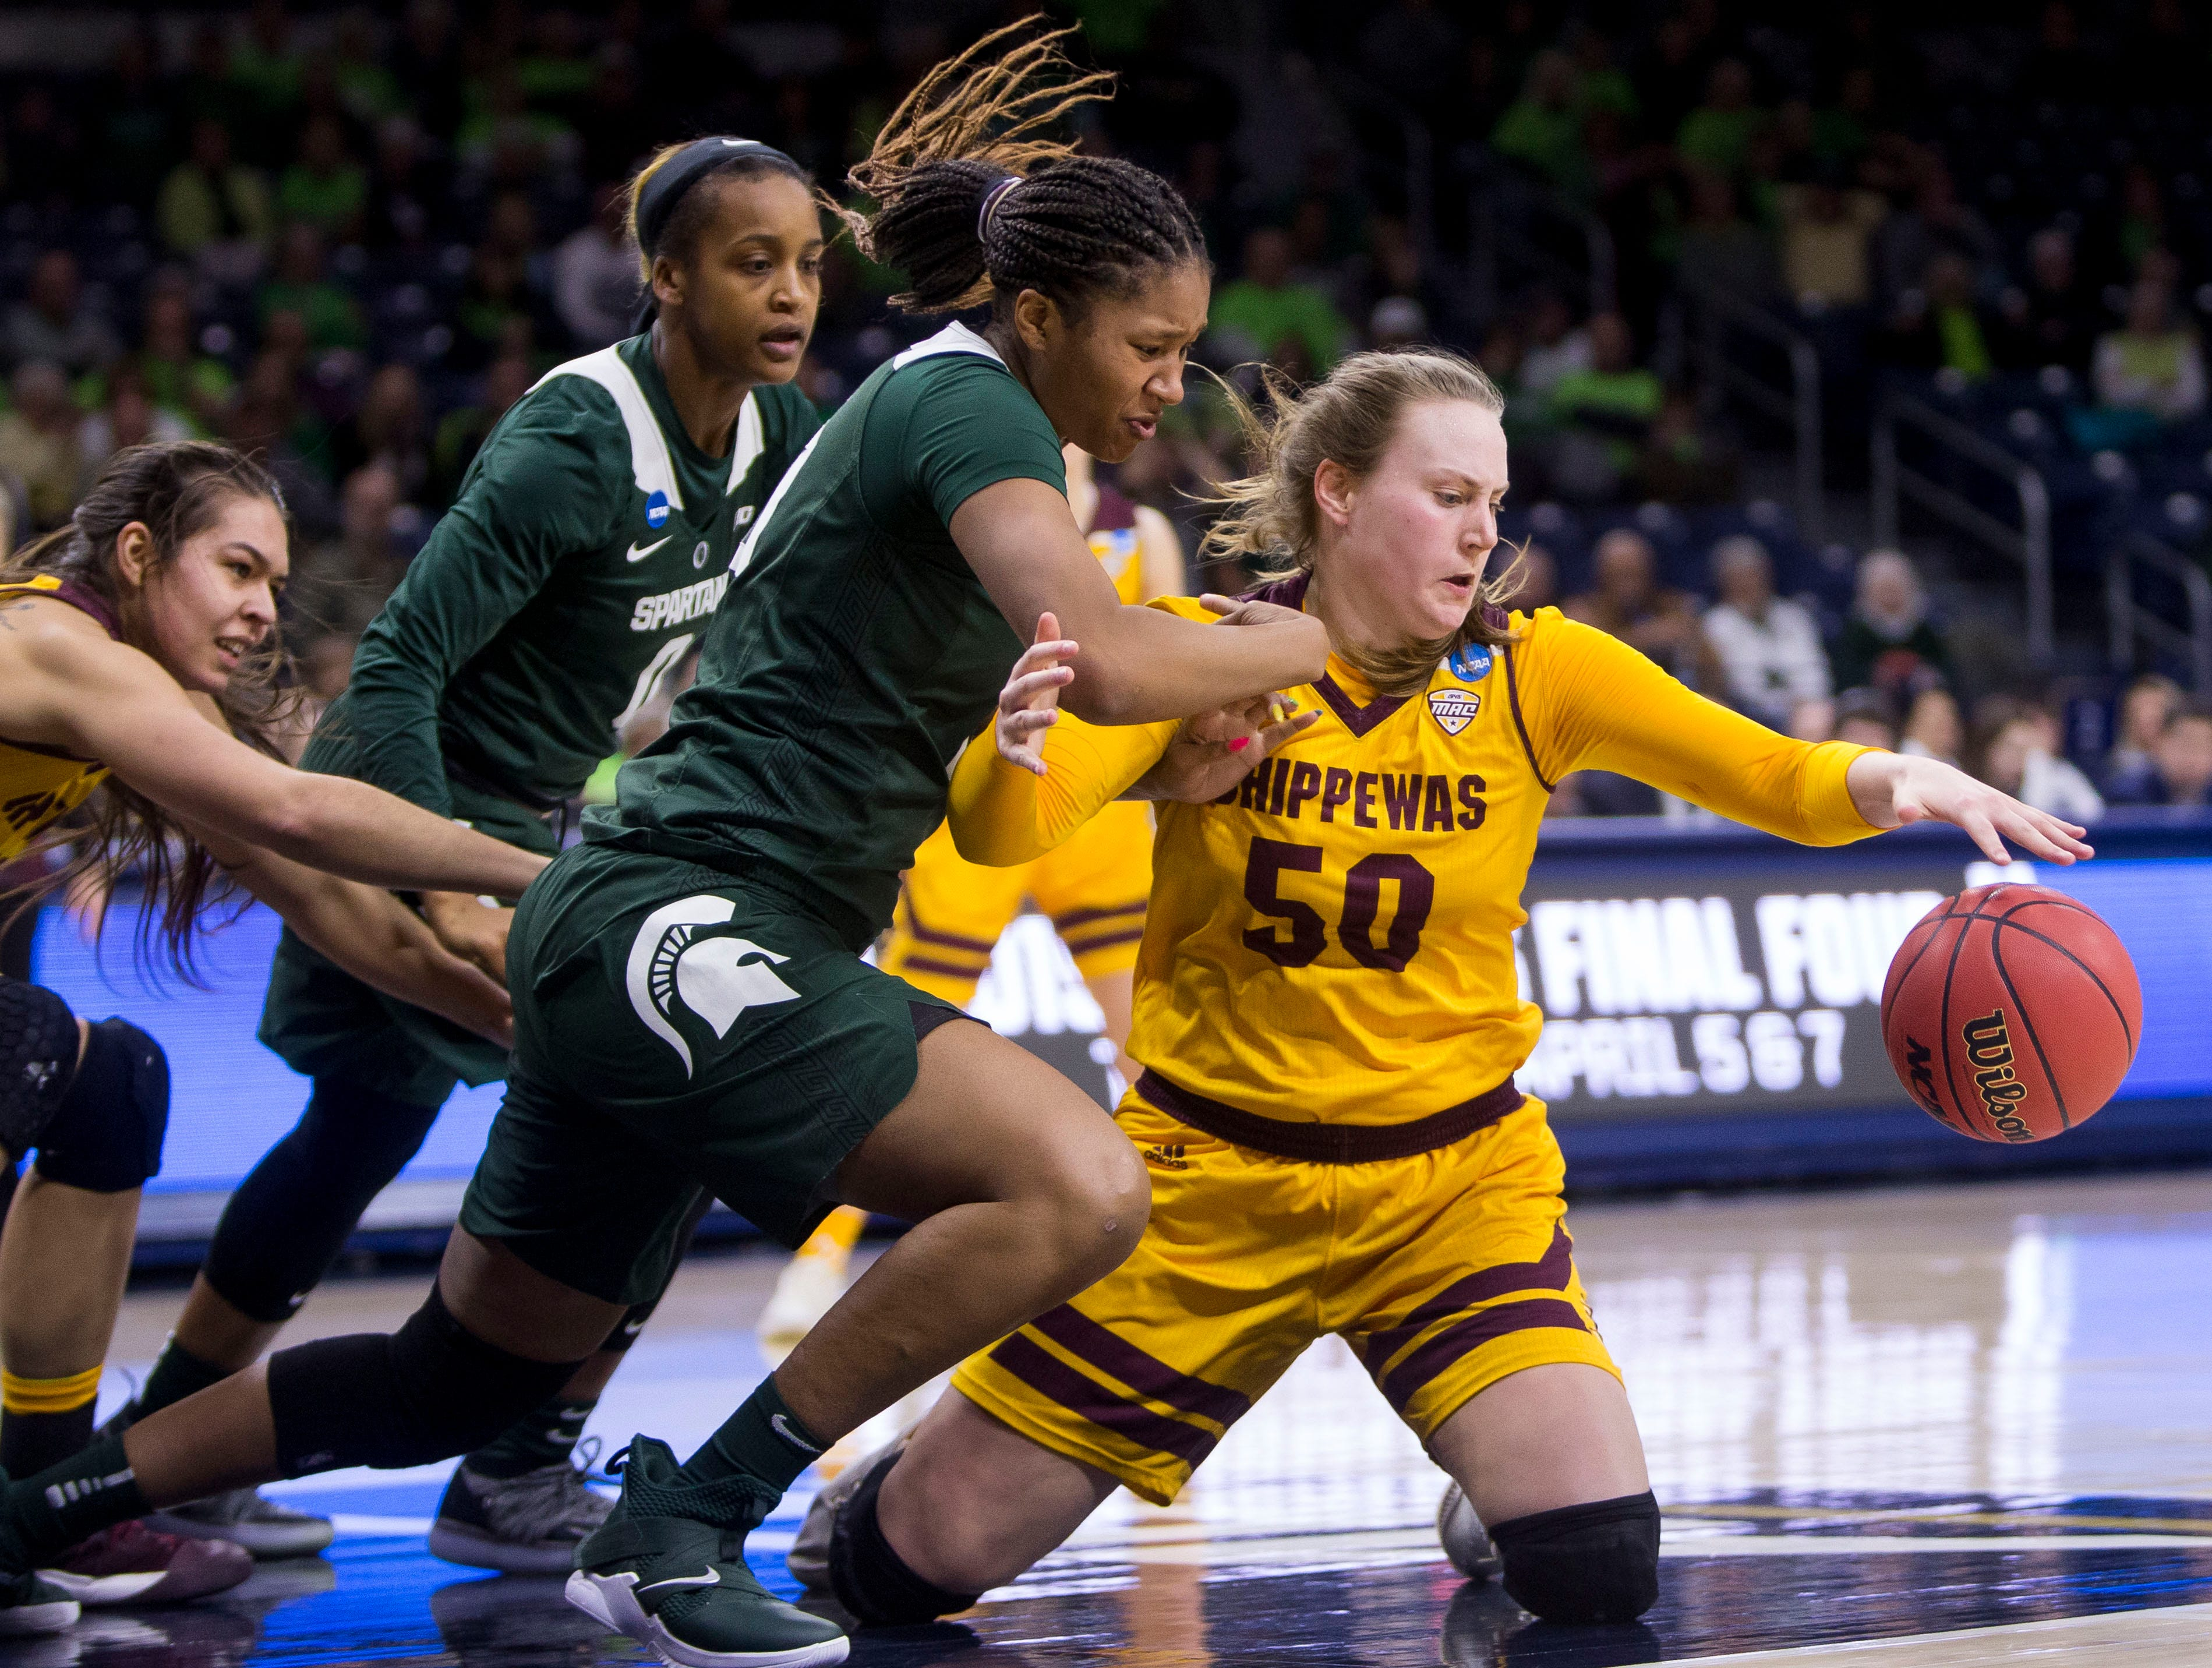 Central Michigan's Kyra Bussell (50) competes for a loose ball with Michigan State's Sidney Cooks (10) during a first-round game in the NCAA women's college basketball tournament in South Bend, Ind., Saturday, March 23, 2019. Michigan State won 88-87.